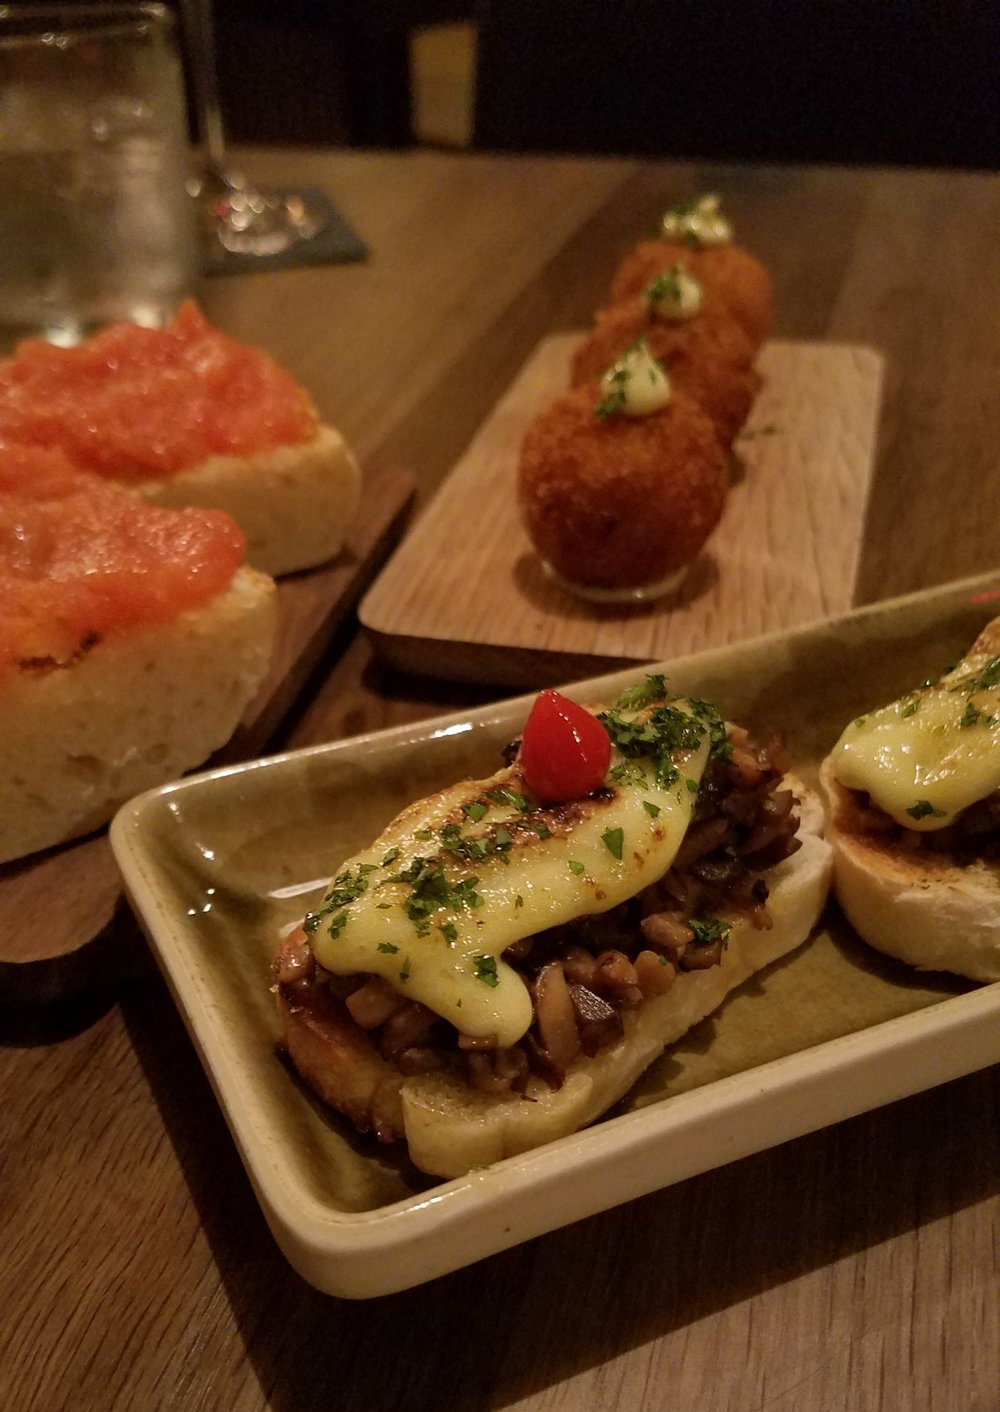 Mushroom Montadito - toasted bread, sauteed mushrooms, truffle aioli and piparras. Just look at the torched aioli! How could you not order a second round?